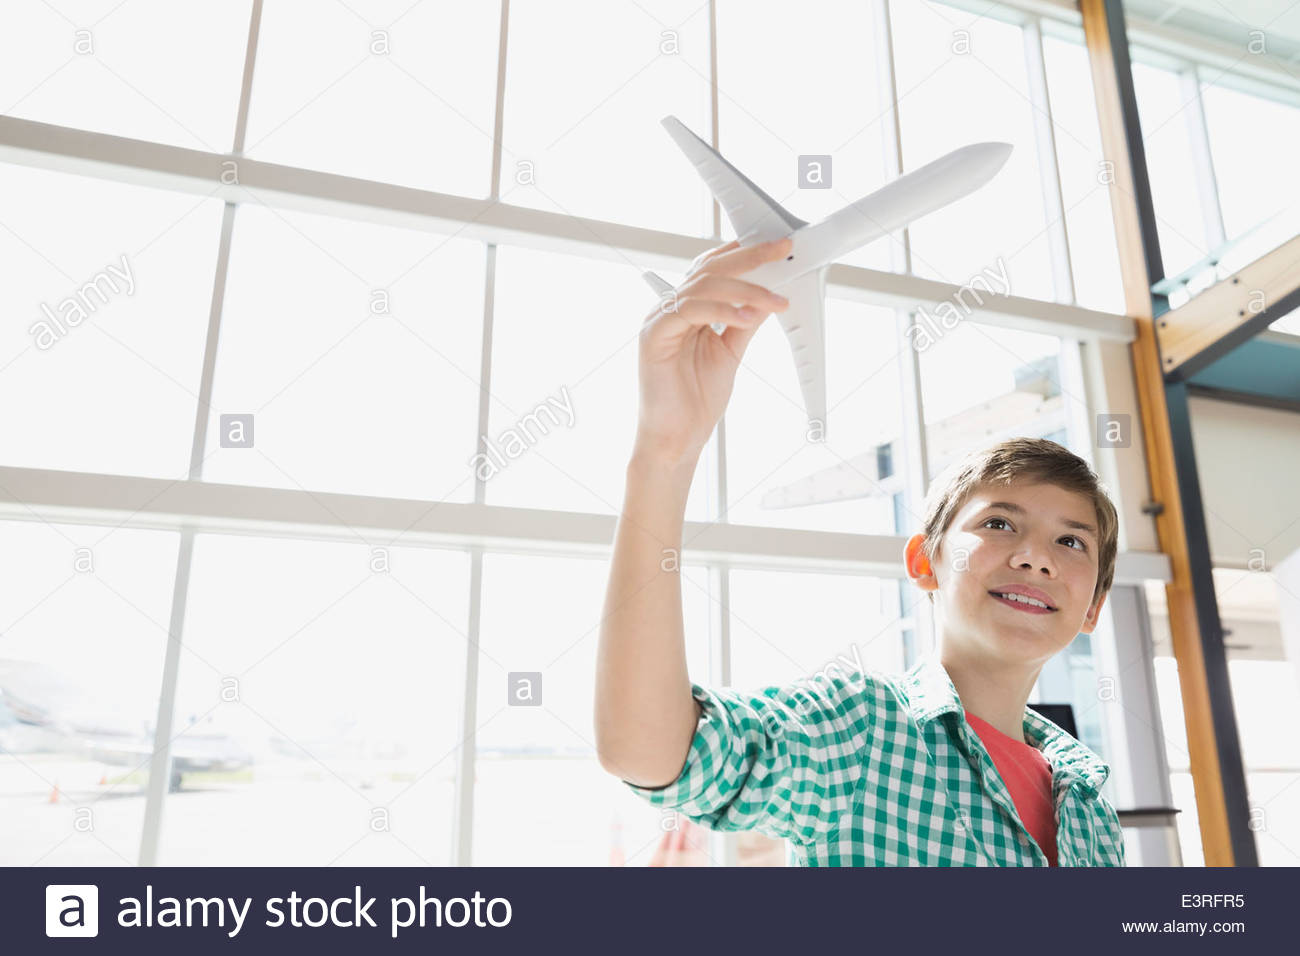 Boy Playing with toy airplane in airport Photo Stock